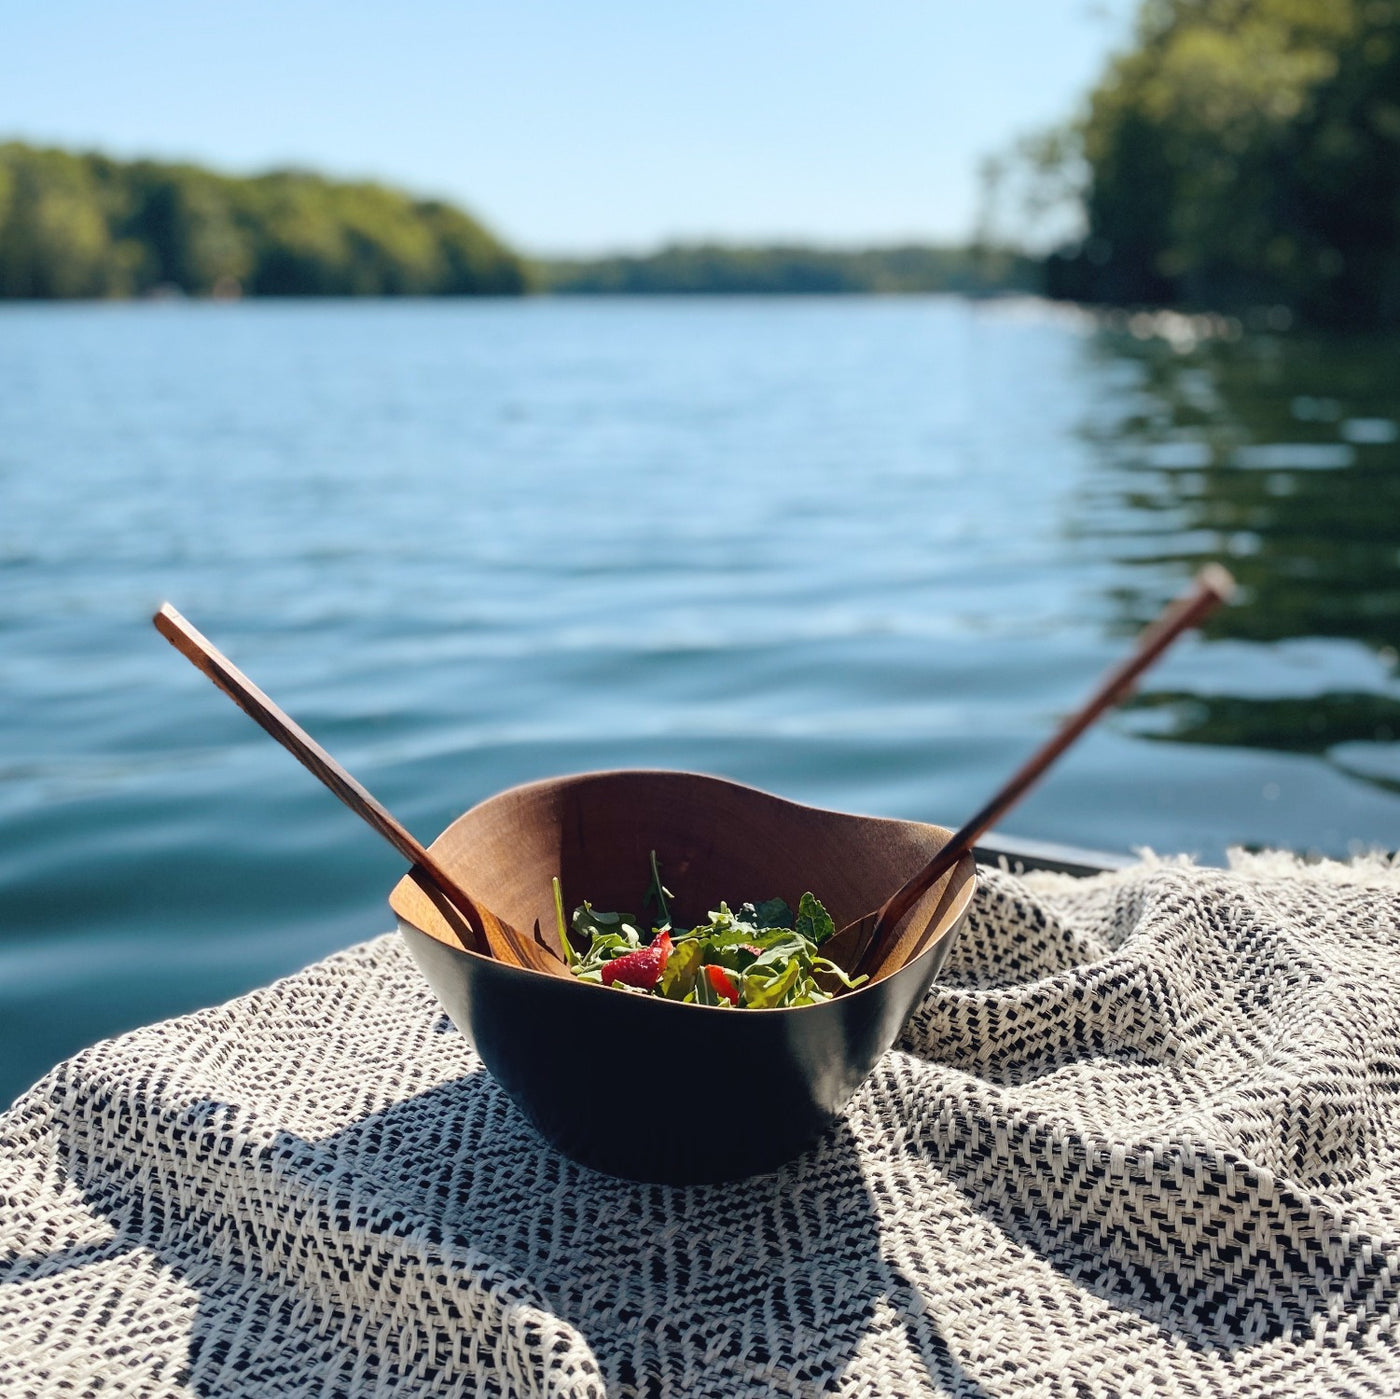 Mahogany salad bowl near a lake